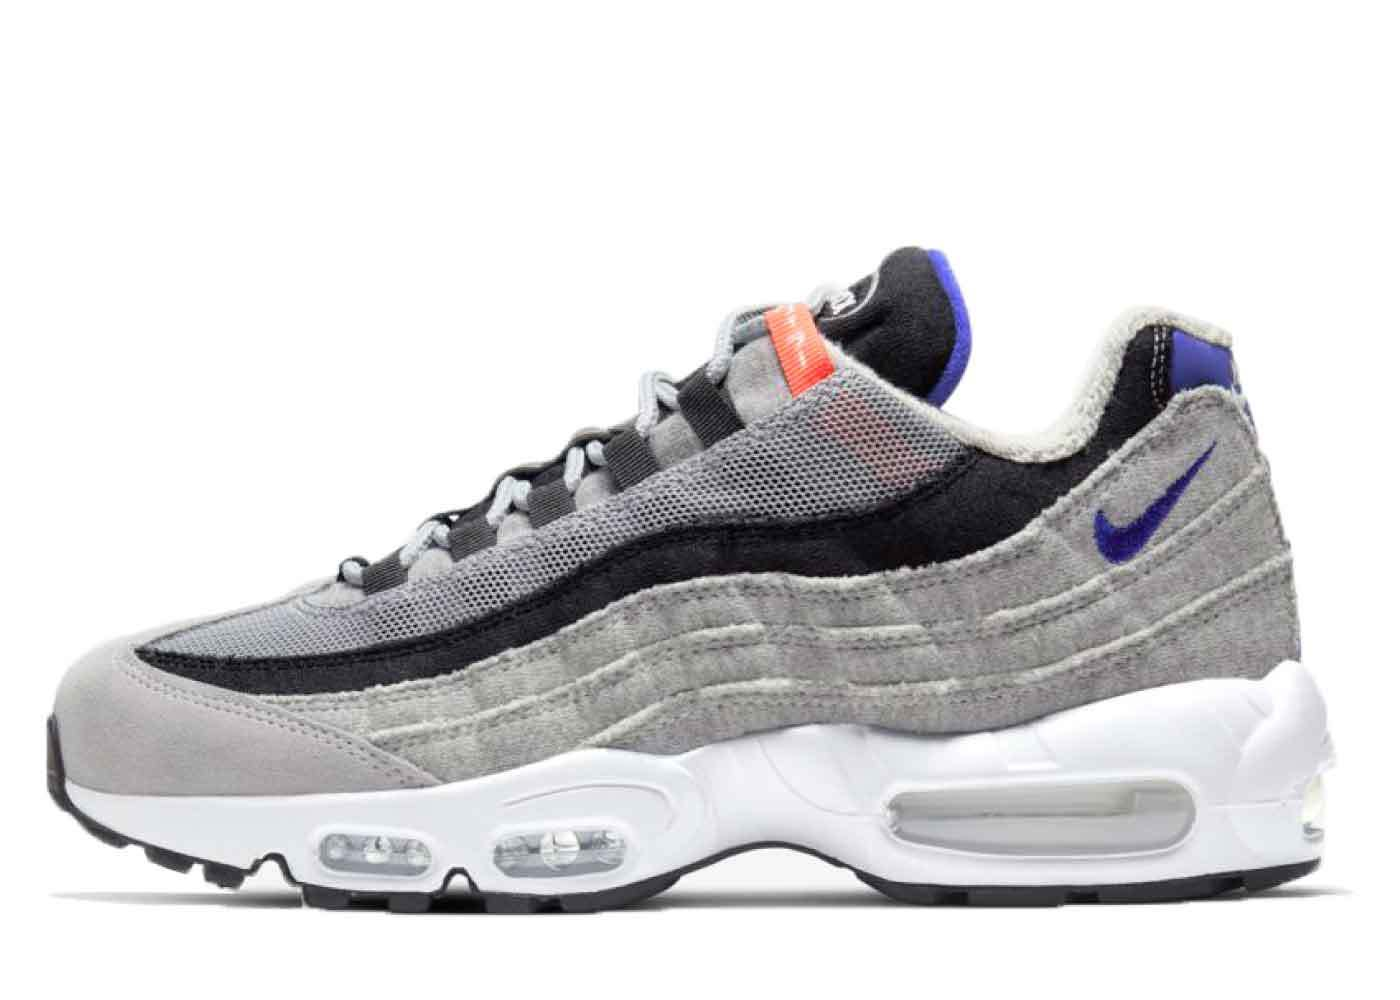 Nike Air Max 95 LoopWeelerの写真